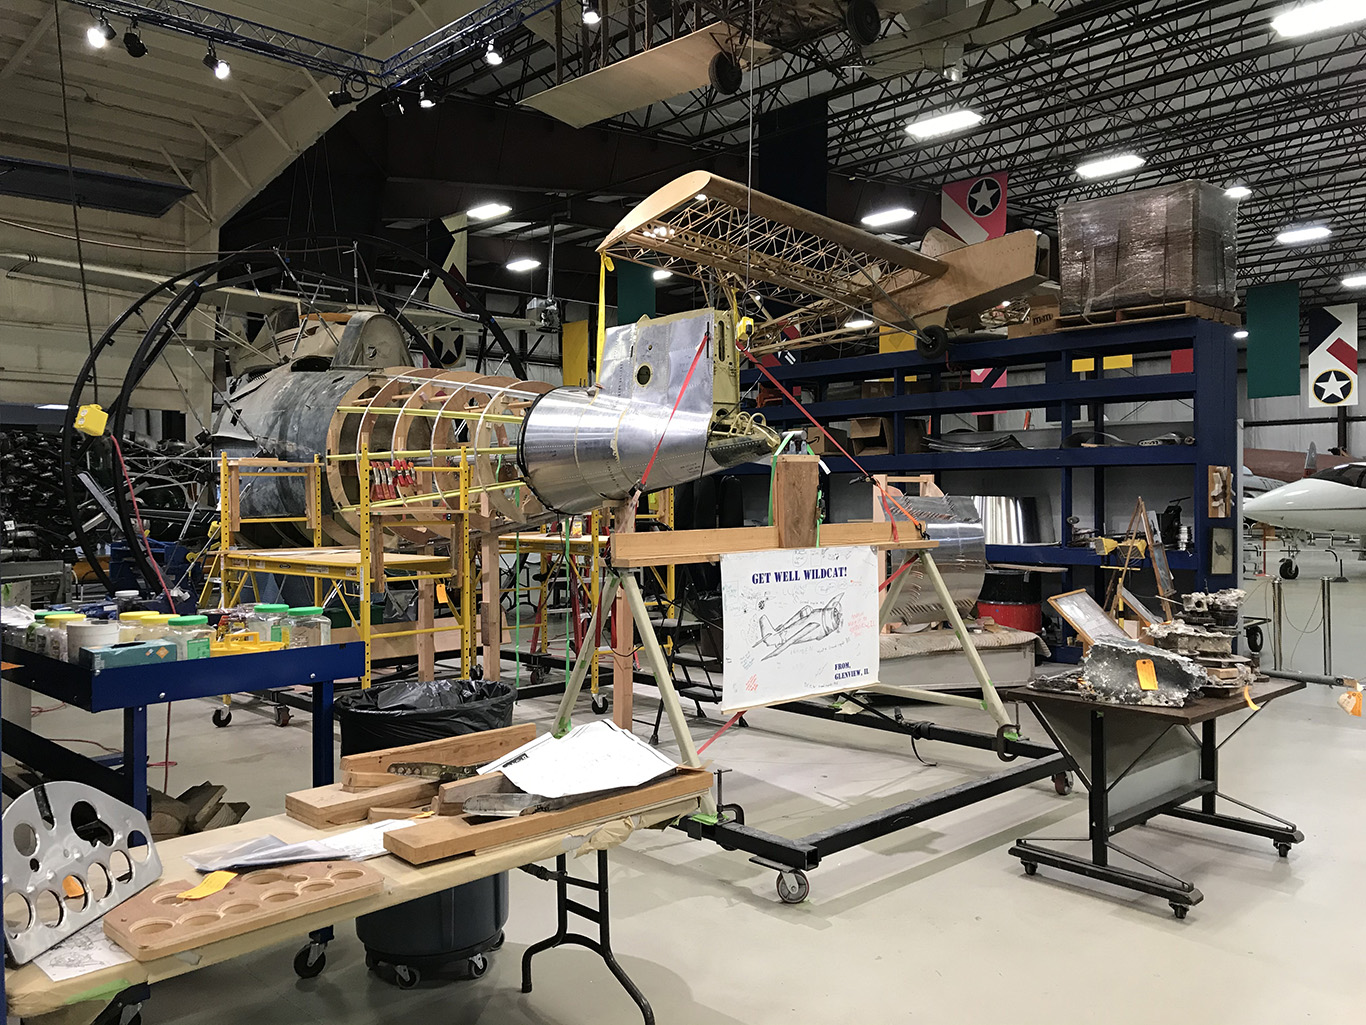 Restoring the FM-2 Wildcat image